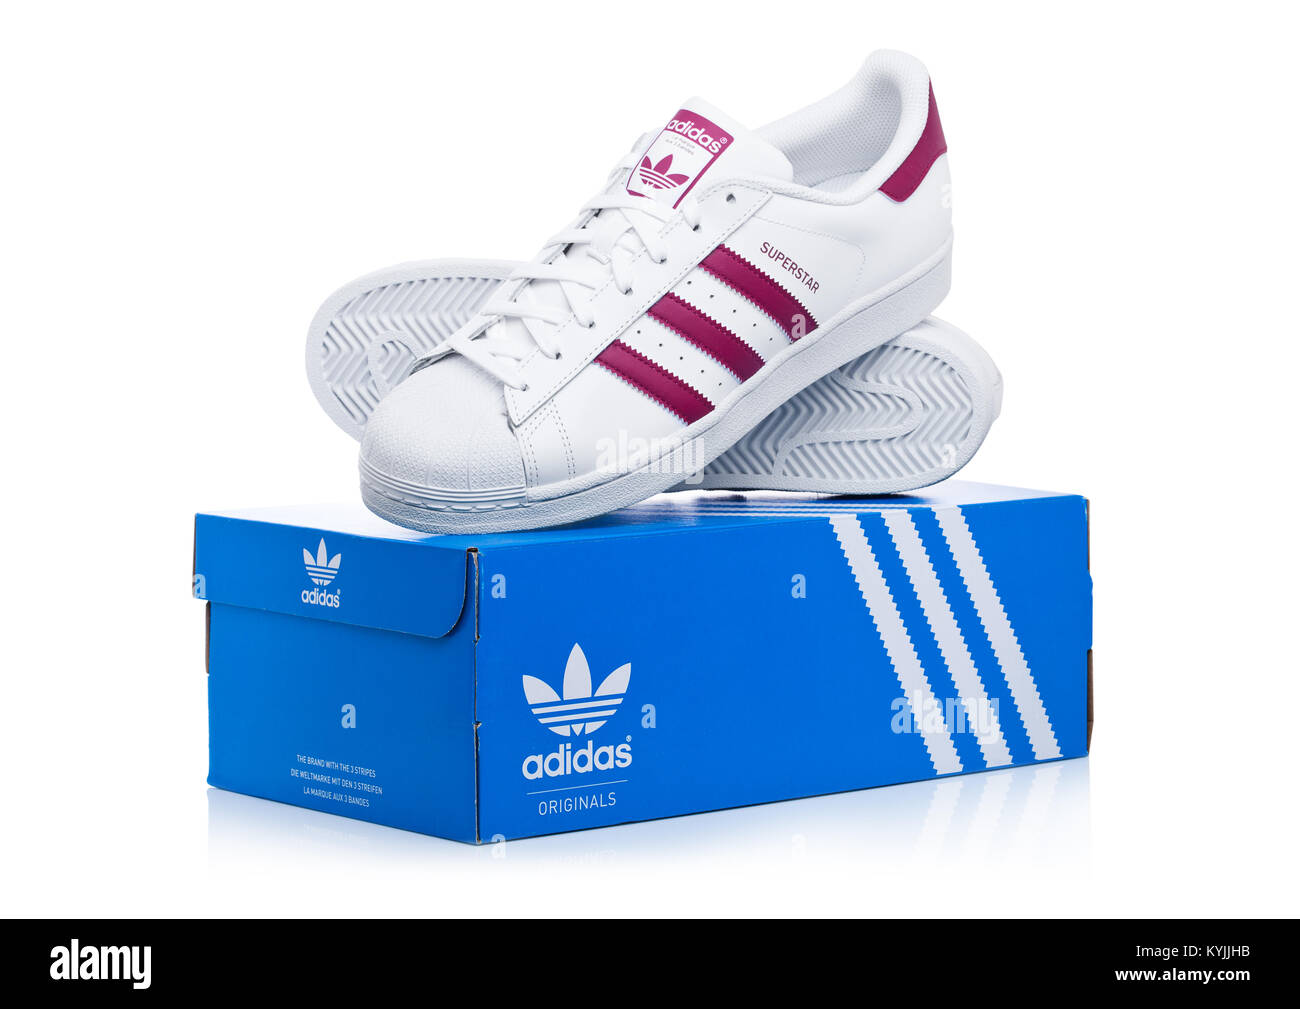 Janvier 2018 12 Adidas Londres Royaume Uni Superstar Originals tpxqzSUw